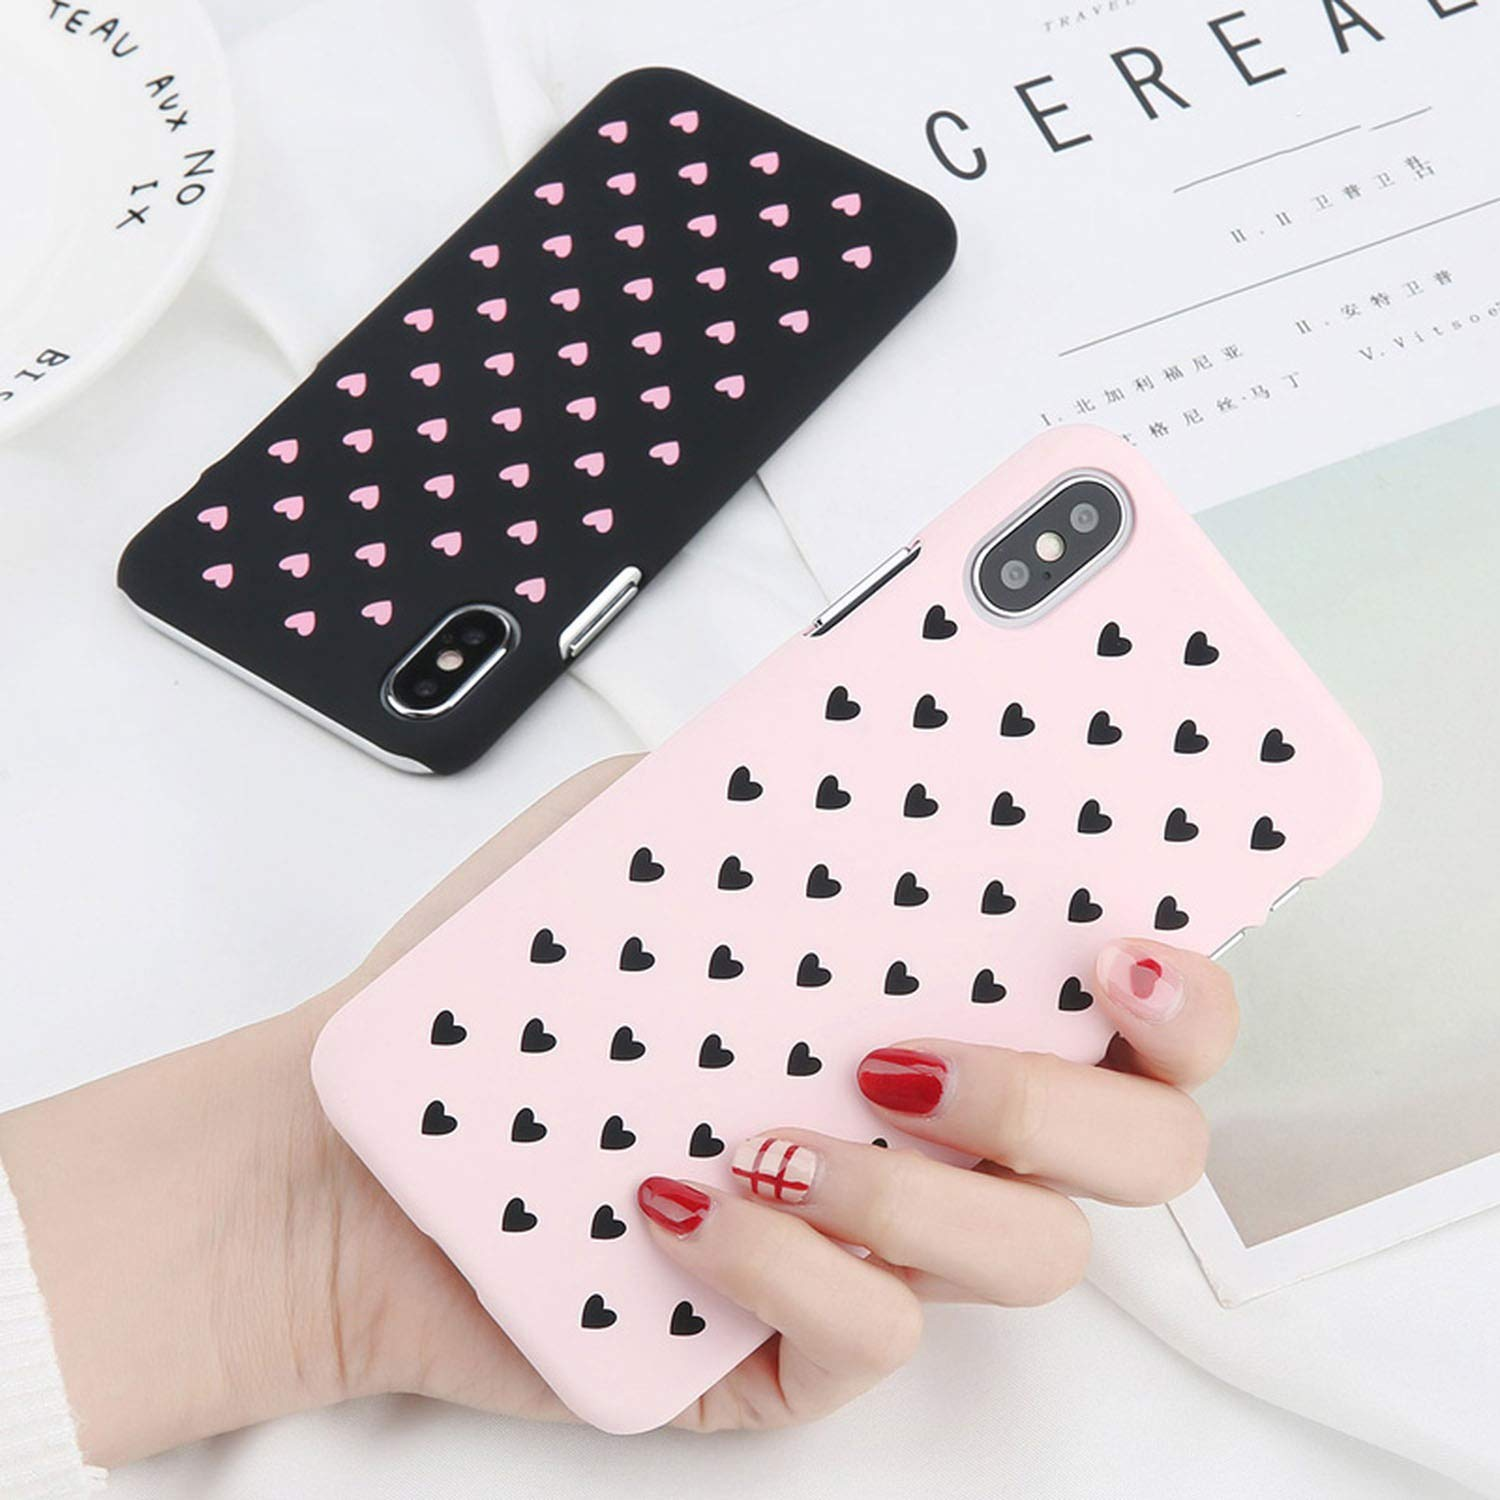 Amazon.com: Phone Case for iPhone XR XS Max Xs X Cute Love Heart Cases Coque for iPhone 7 6 6s 8 Plus 5 5s SE Hard PC Cover Fundas,SJ7267 Pink,for iPhone 5 ...